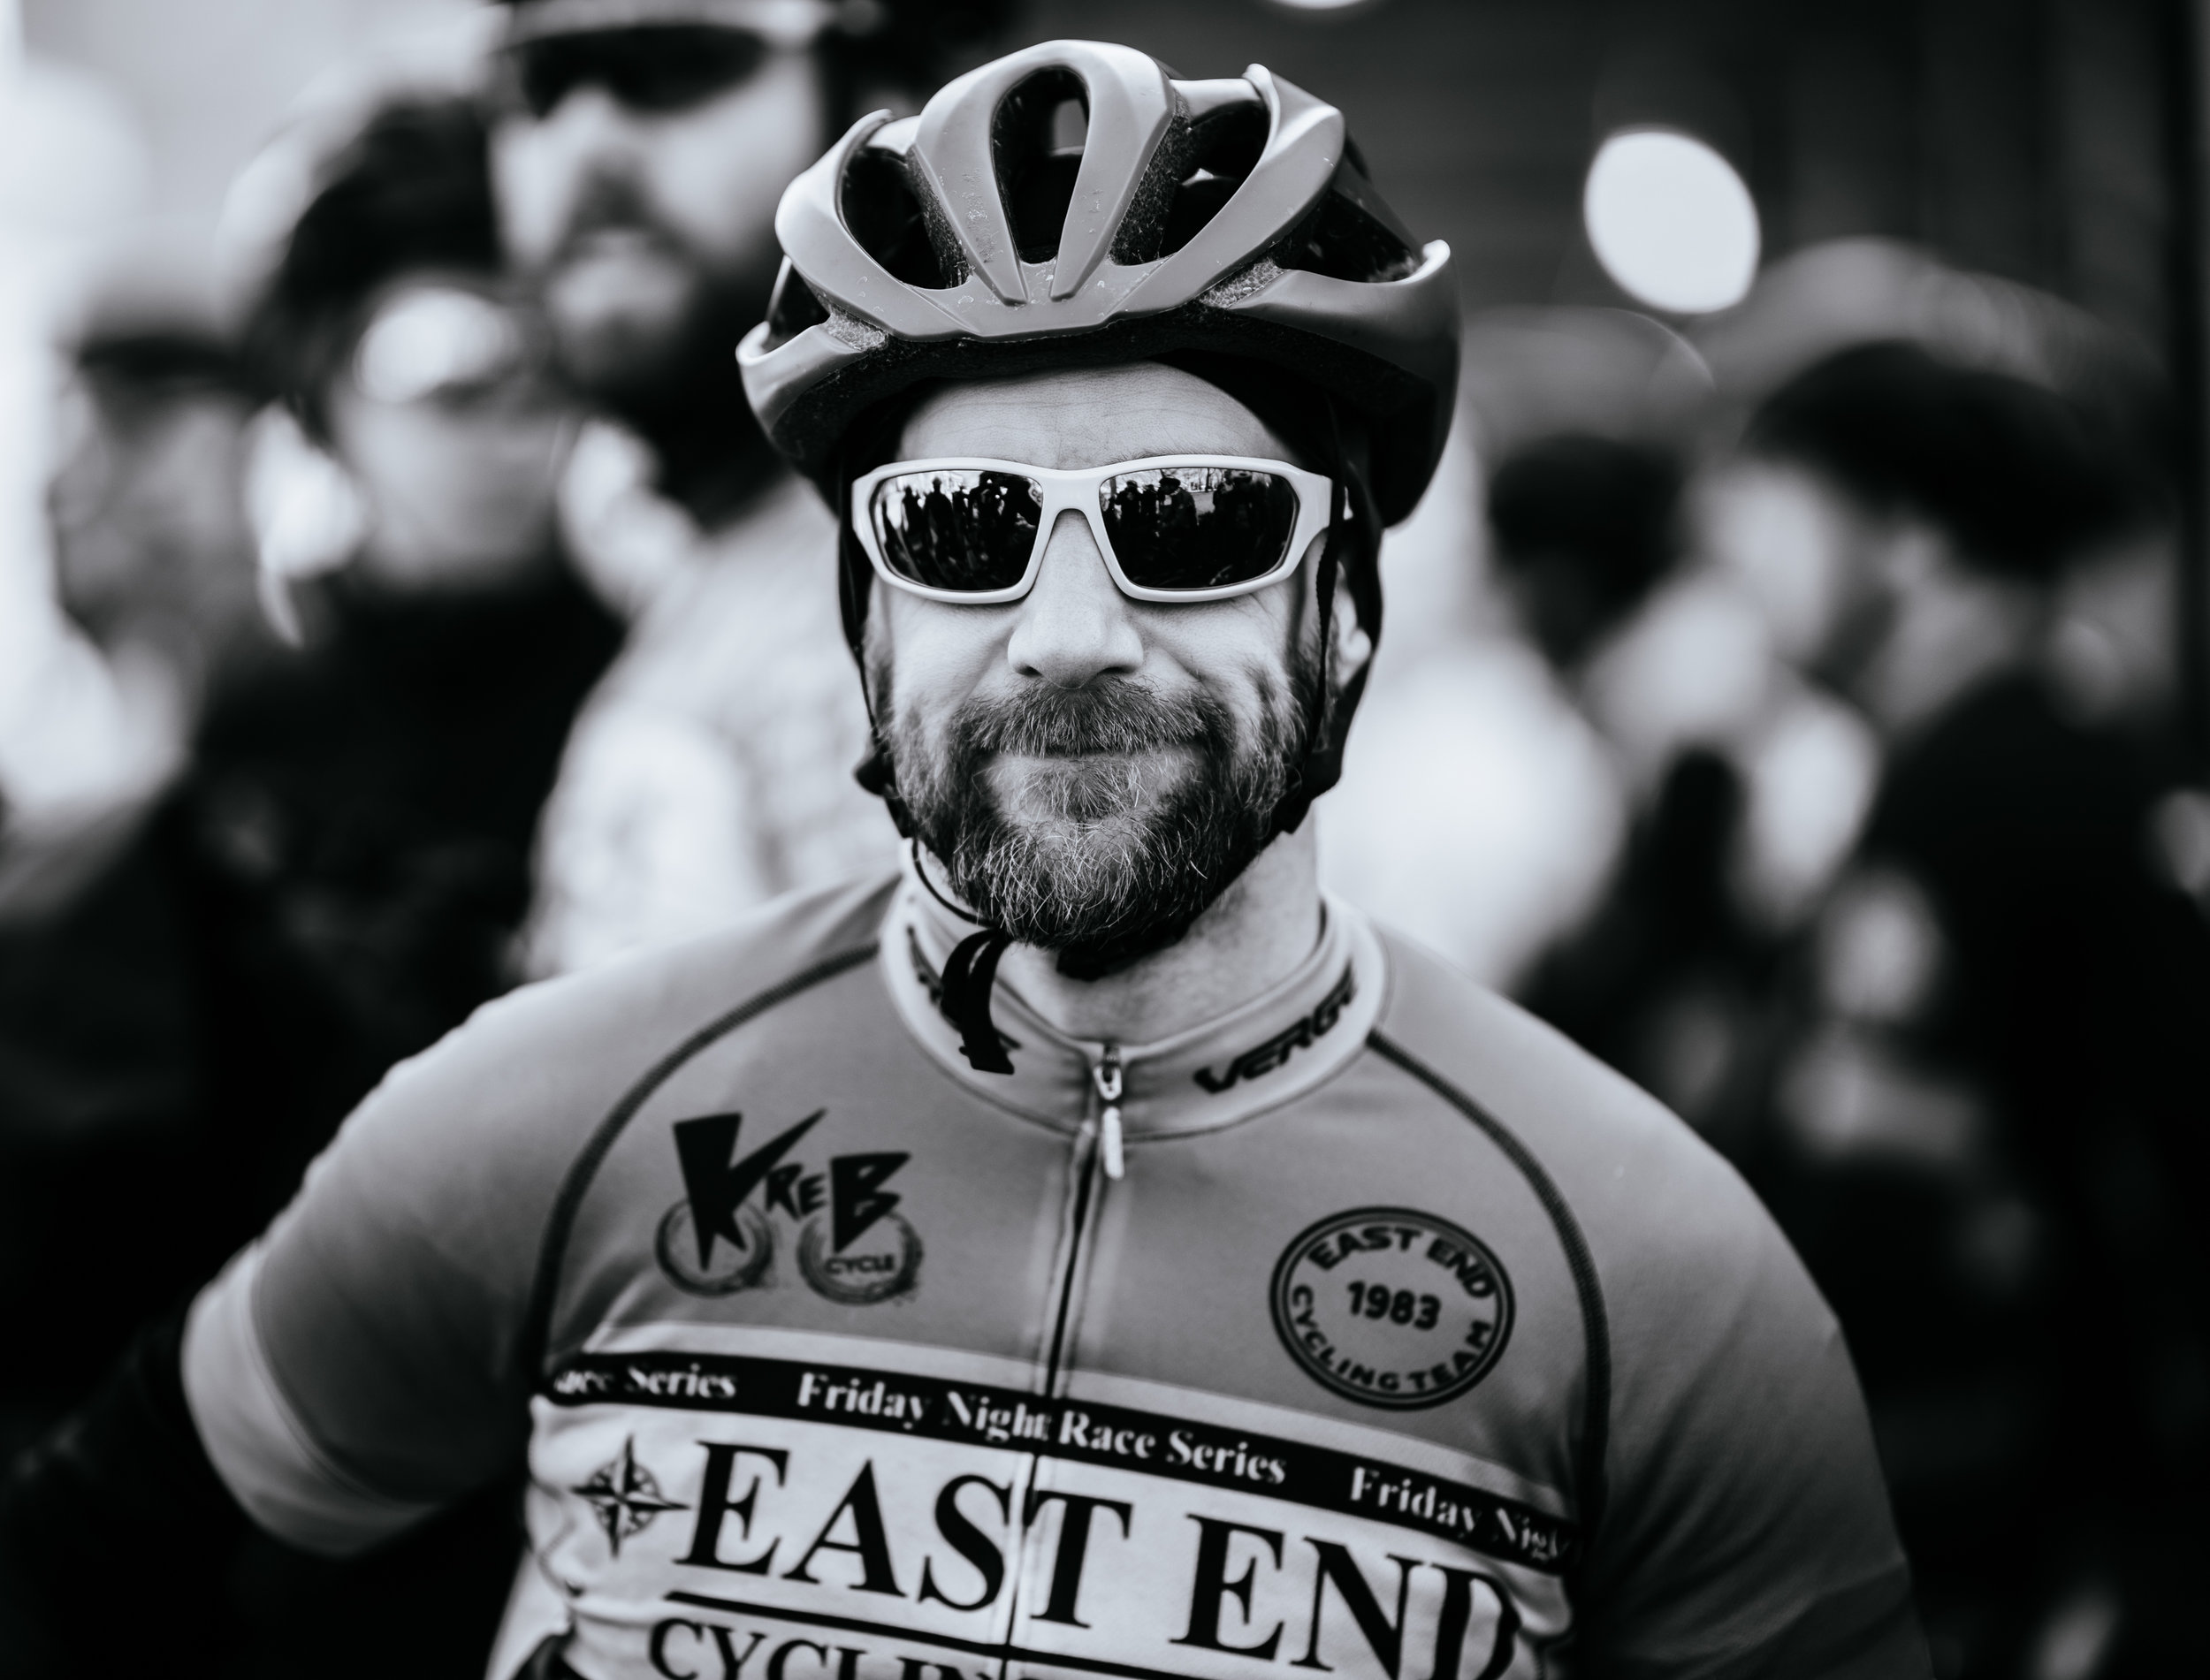 Photo Rhetoric - To Be Determined - Grant's Tomb Criterium-2016.jpg